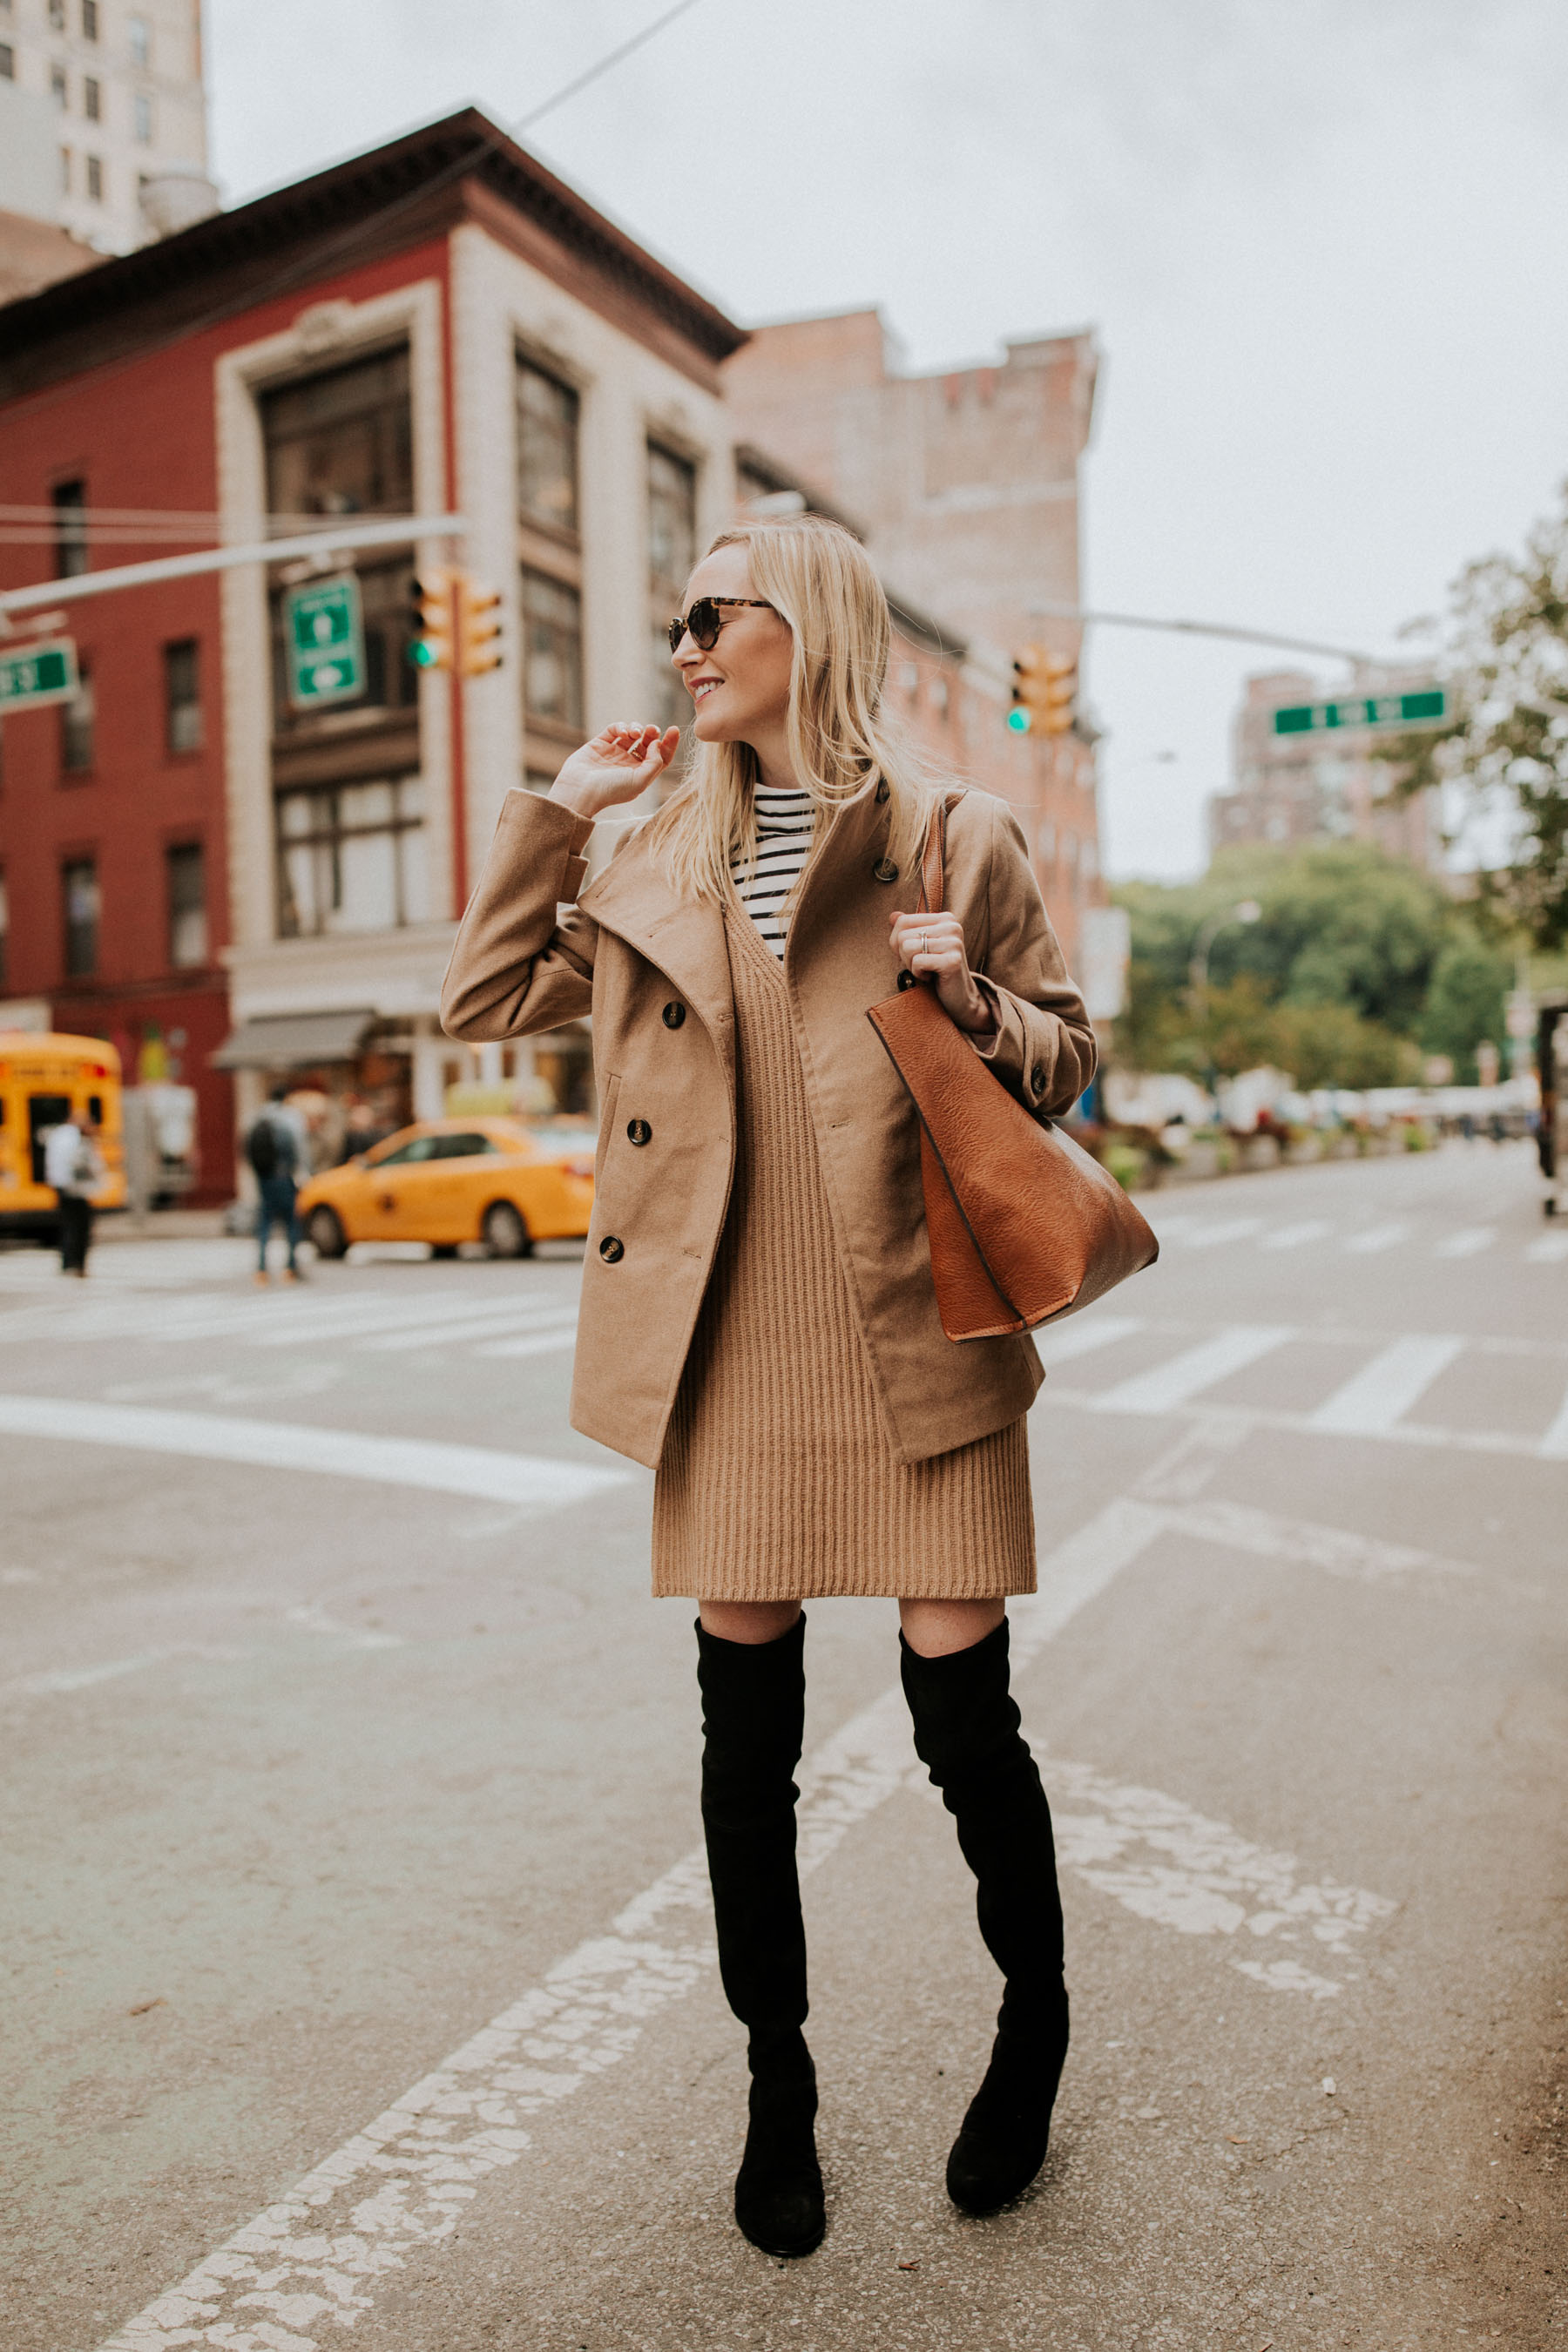 $38 Peacoat / Camel Sweater Dress / $49 Faux Leather Tote / Stuart Weitzman Boots